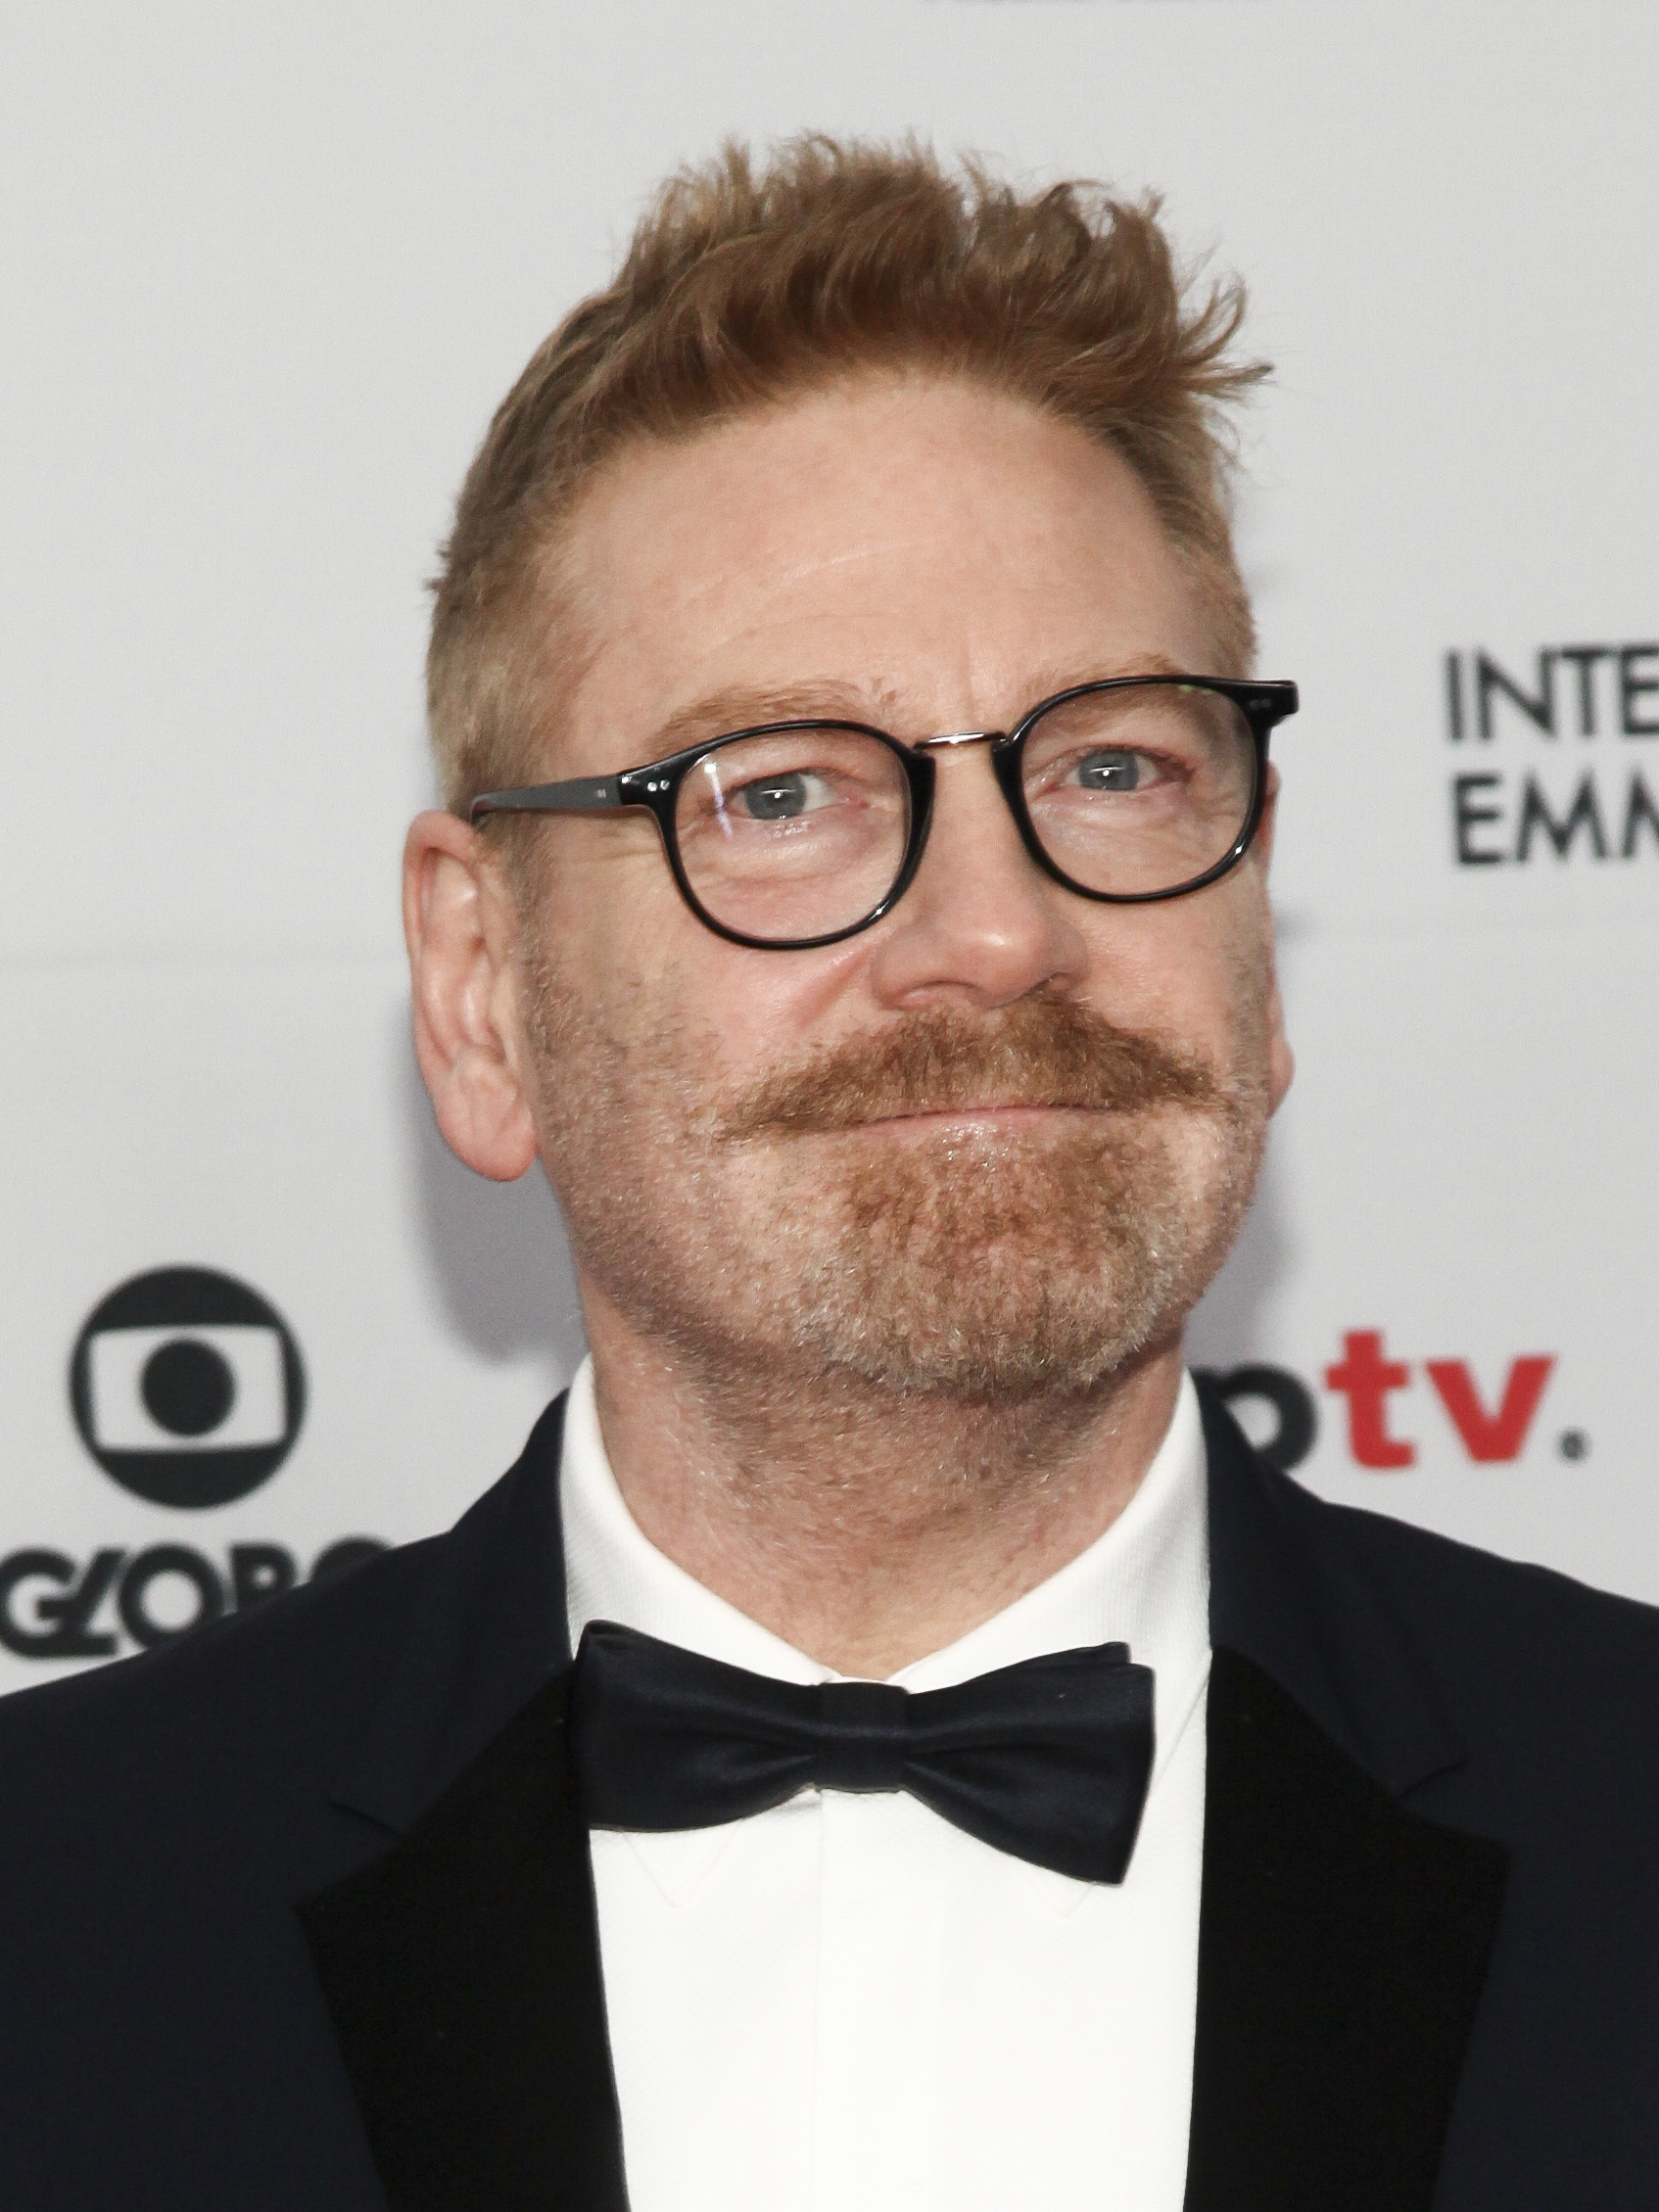 Kenneth Branagh attends the 45th International Emmy Awards at the New York Hilton on Monday, Nov. 20, 2017, in New York. (Photo by Andy Kropa/Invision/AP)